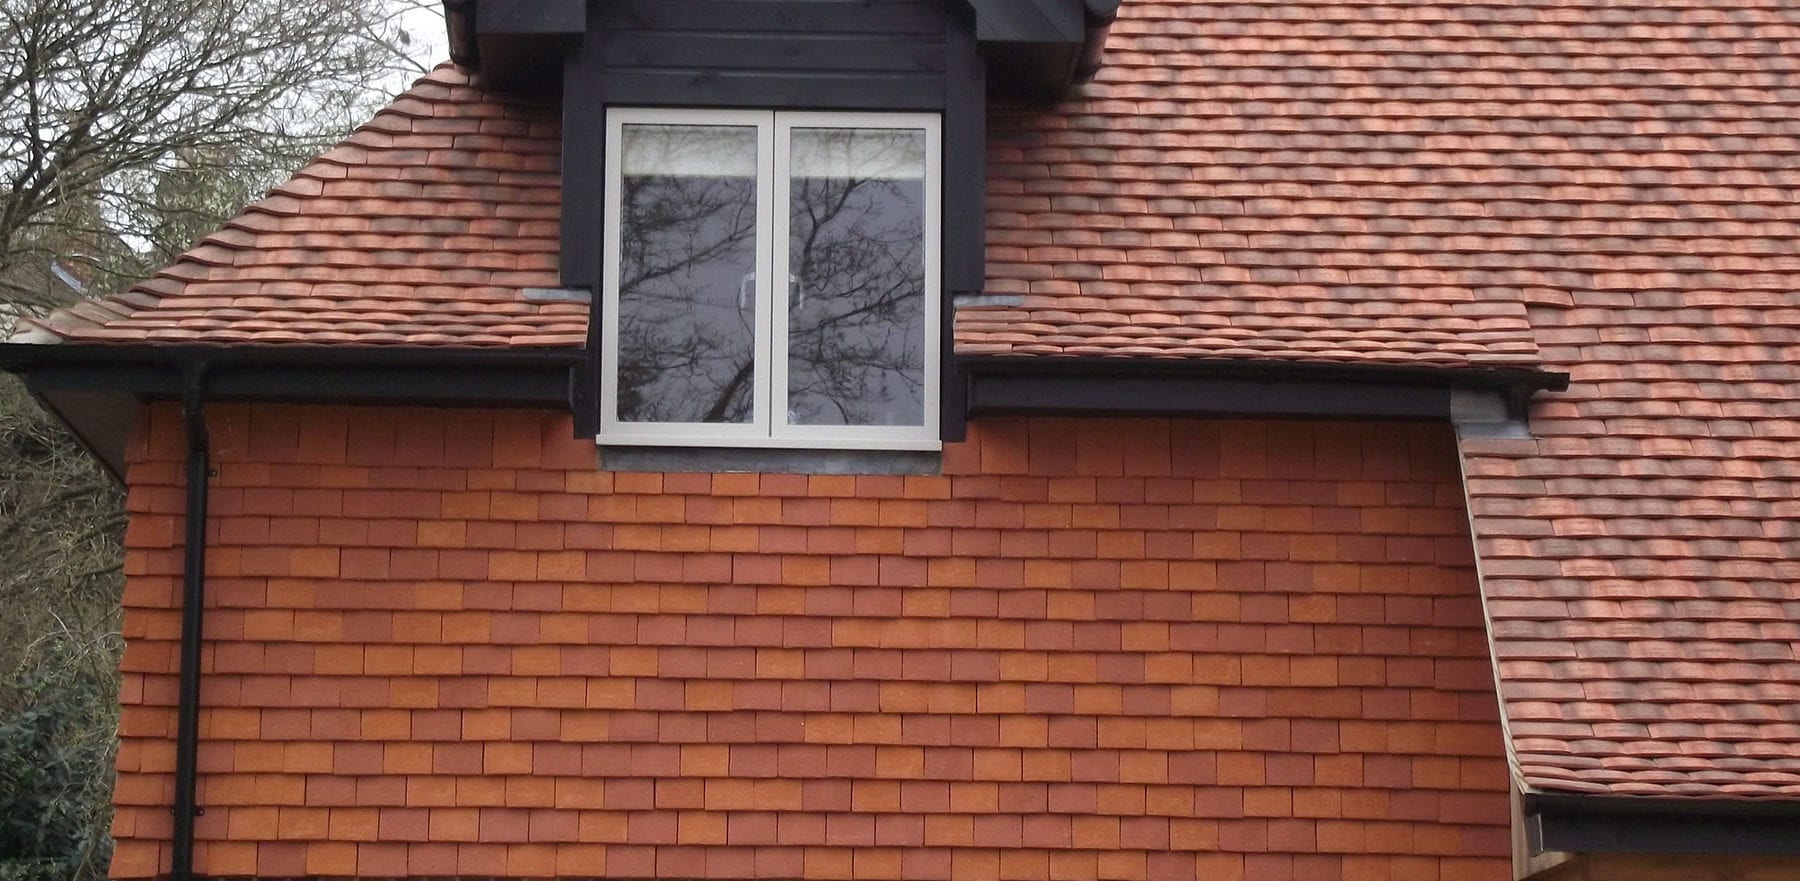 Lifestiles - Handcrafted Orange Clay Roof Tiles - Liss, England 3